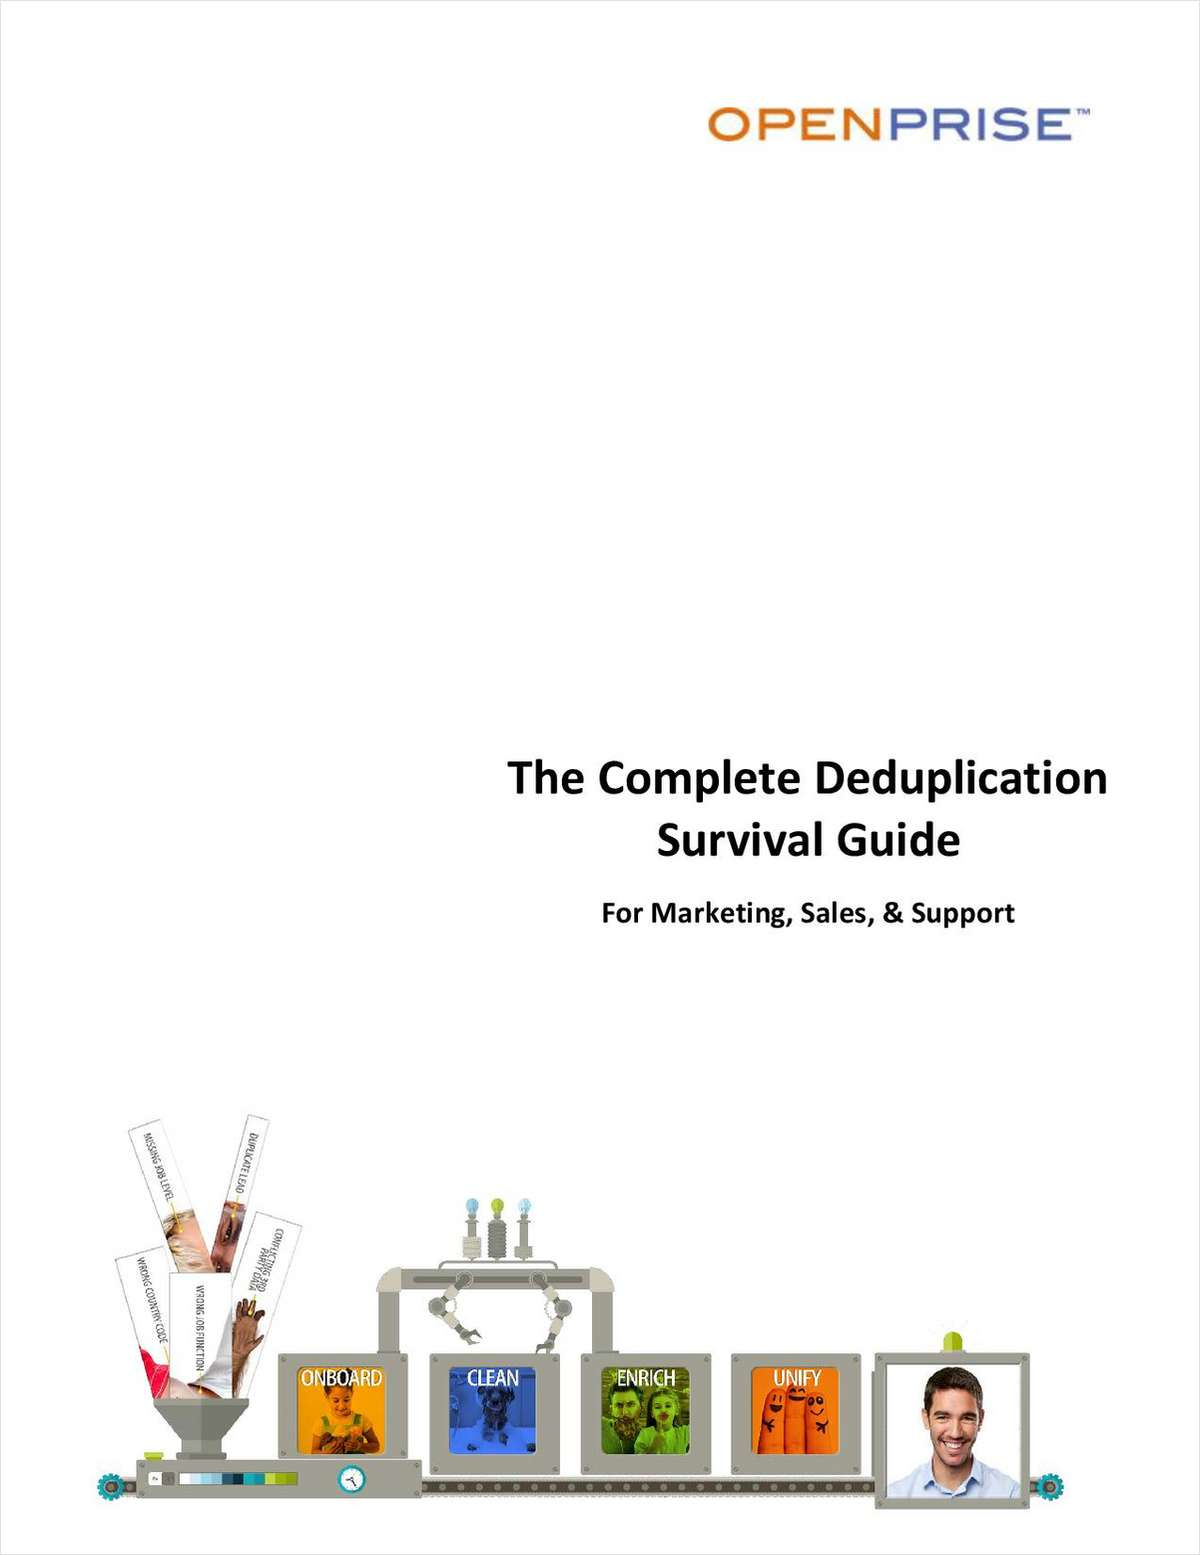 The Complete Deduplication Survival Guide